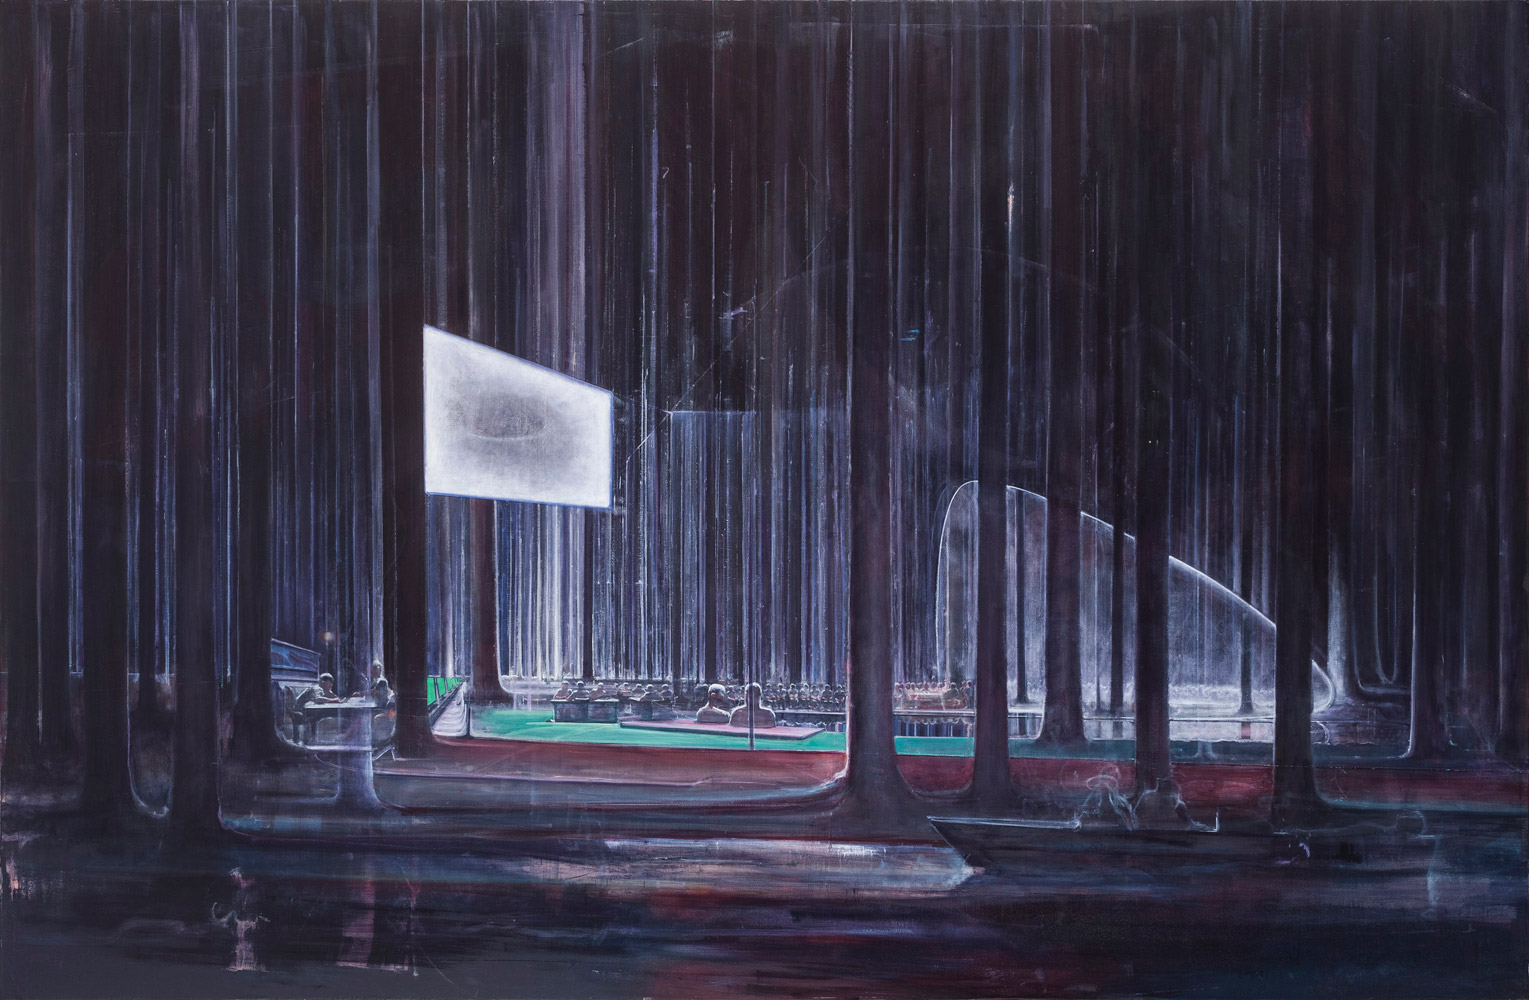 """Zhu Xinyu, """"A Clear Reflection"""", 2014, oil on canvas"""